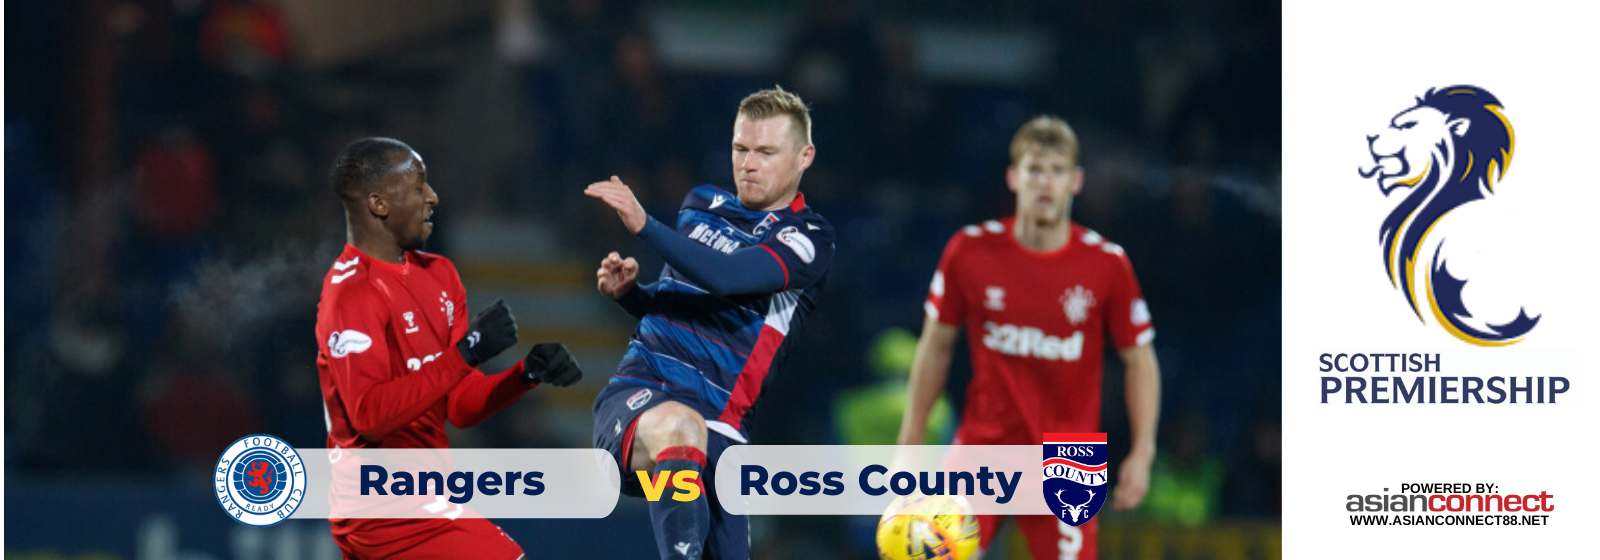 Asianconnect: Rangers vs Ross County Odds for January 29, 2020